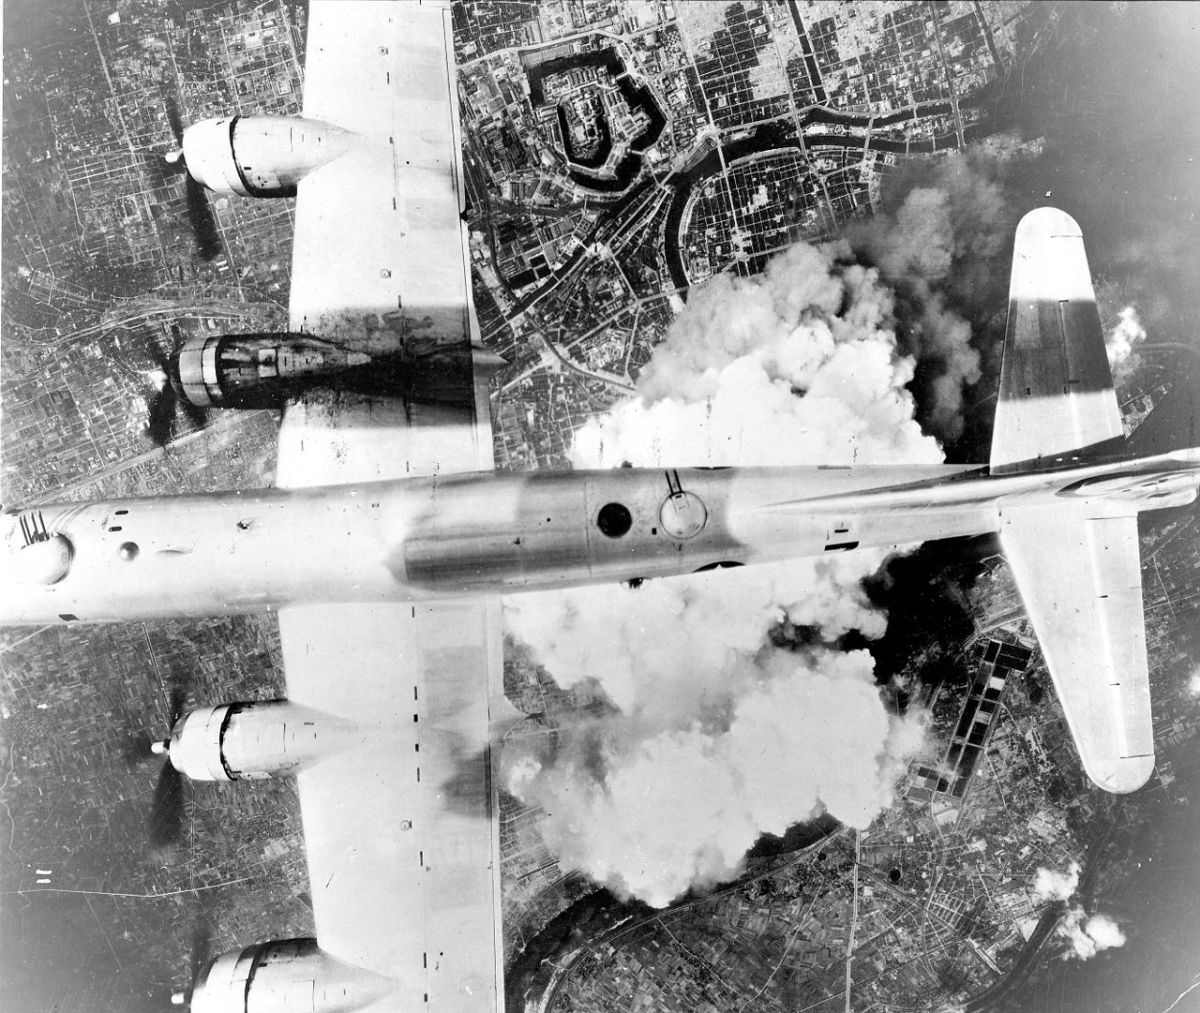 A B-29 dropping incendiary bombs on a Japanese city 1945.